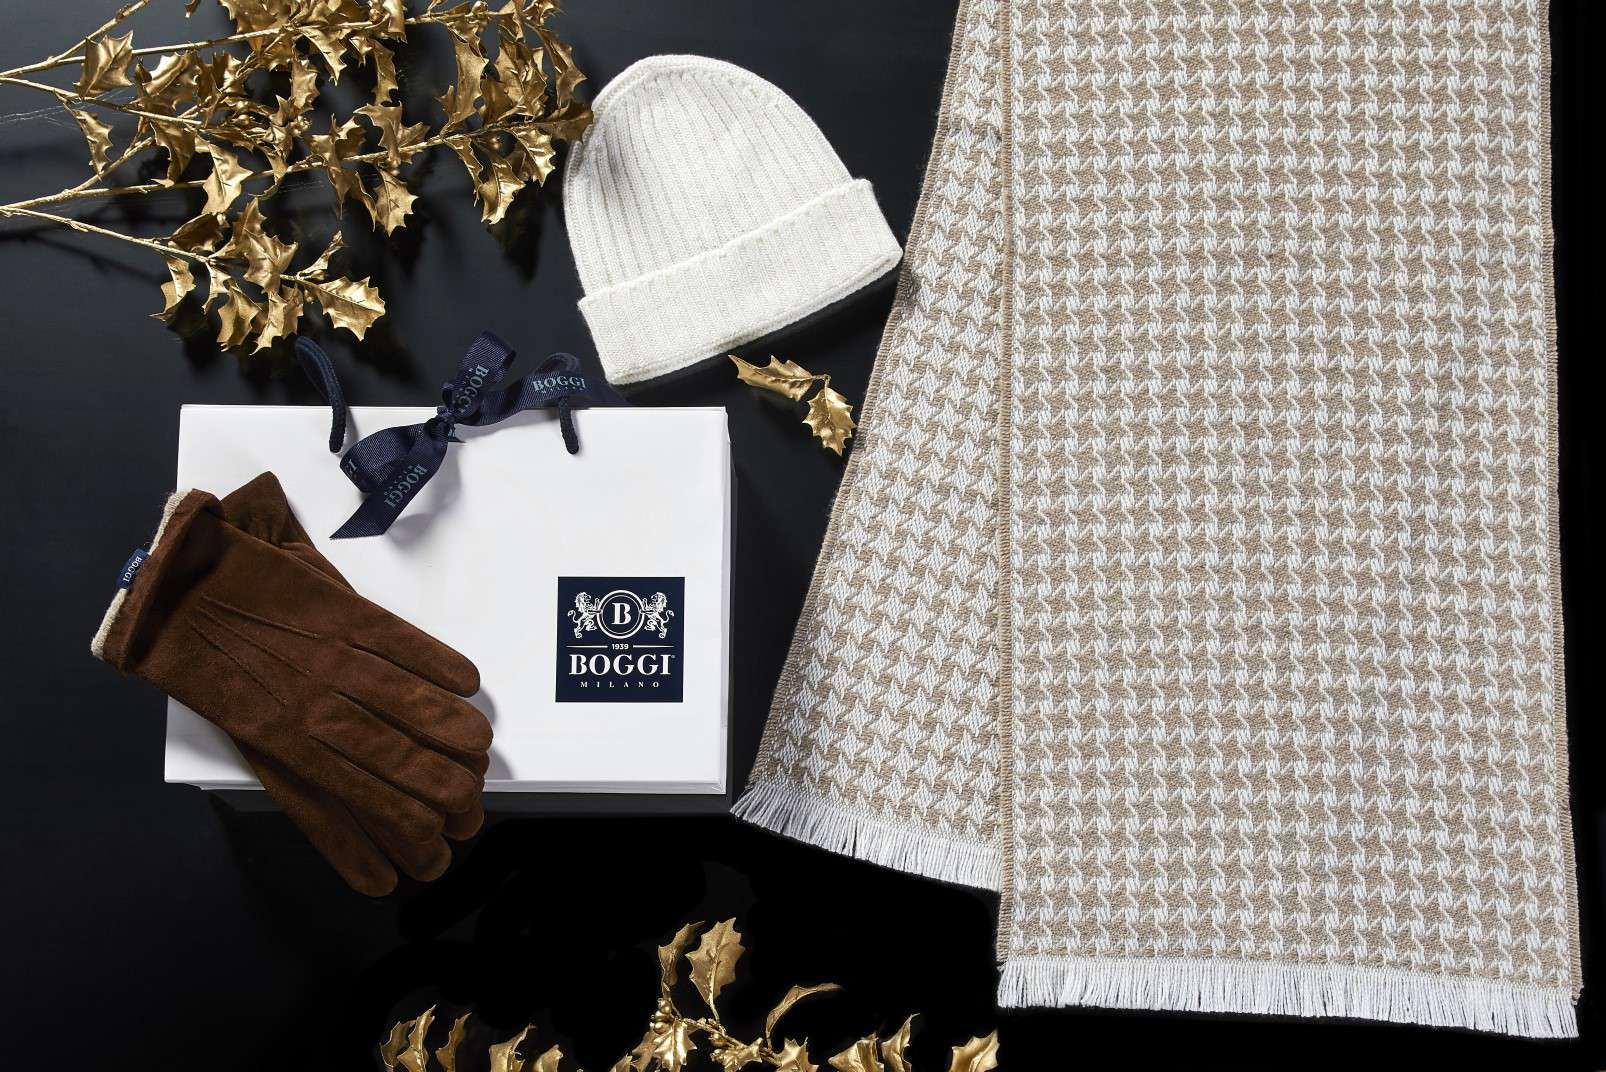 Boggi Milano gifts for a Gentleman - cashmere scarf and hat